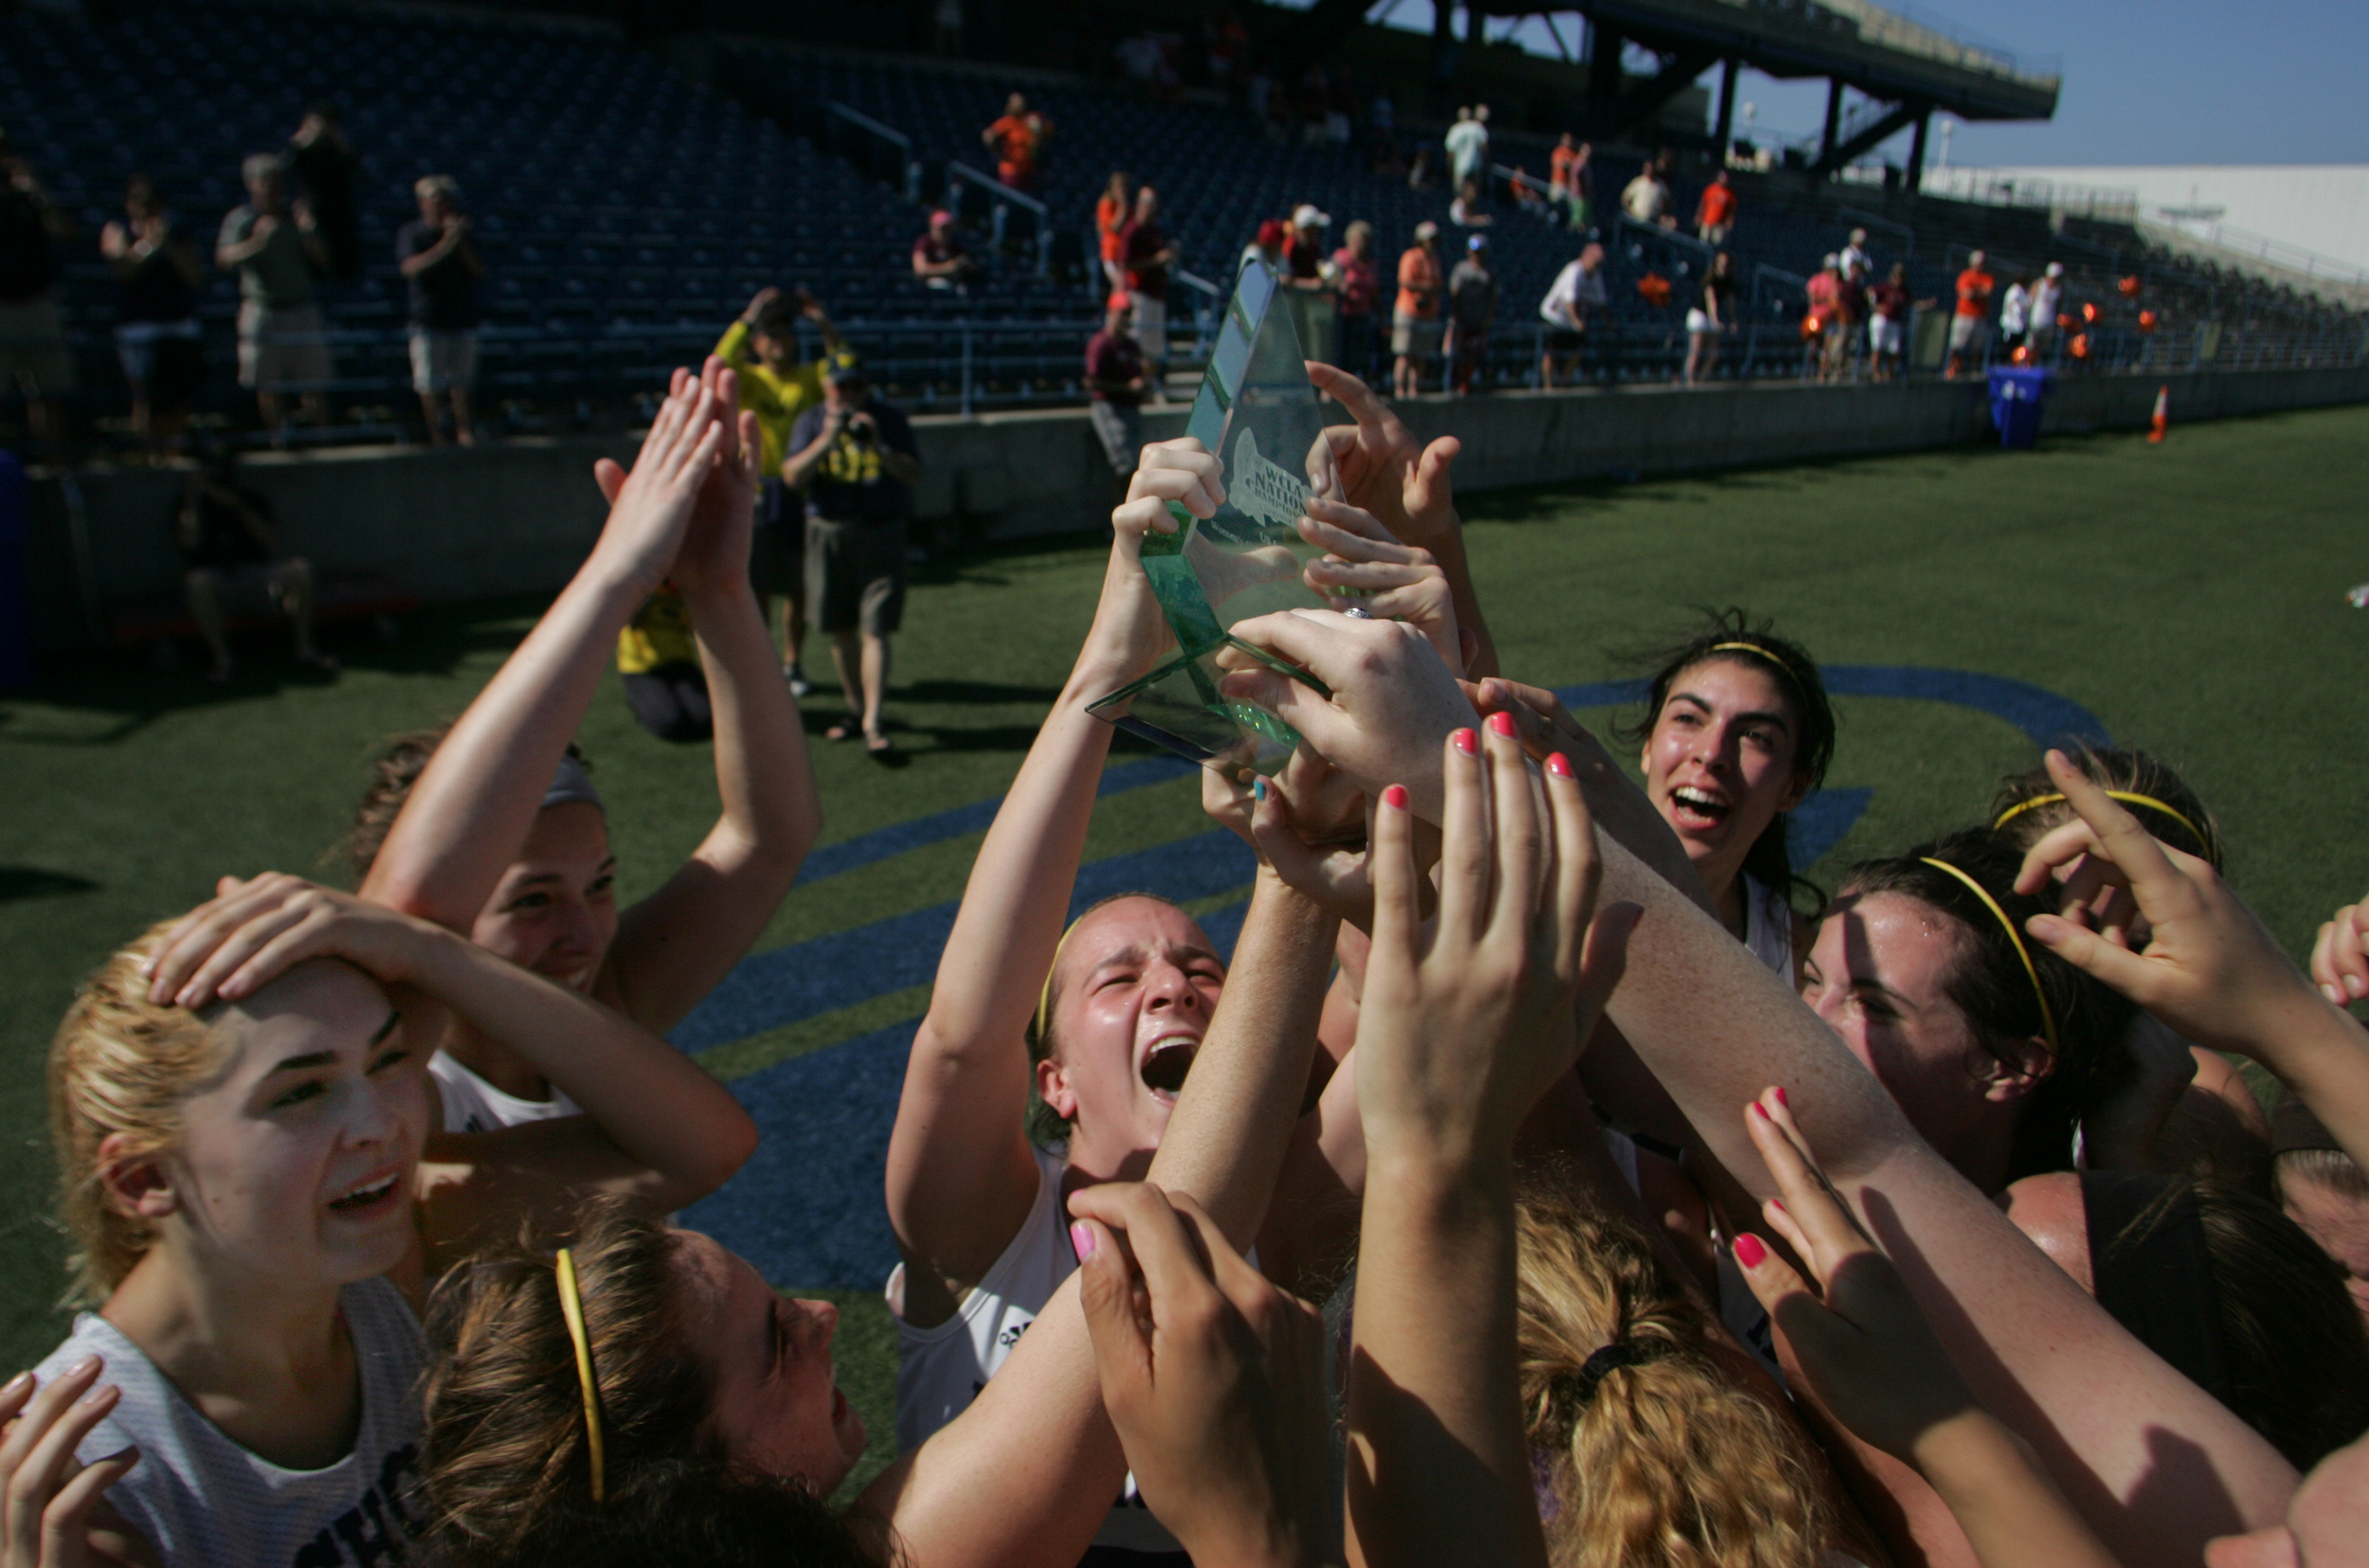 The Michigan women's lacrosse team celebrates after beating Virginia Tech 8-3 to win the national championship, Saturday, May 9, 2015 at the Sportsplex in Virginia Beach.